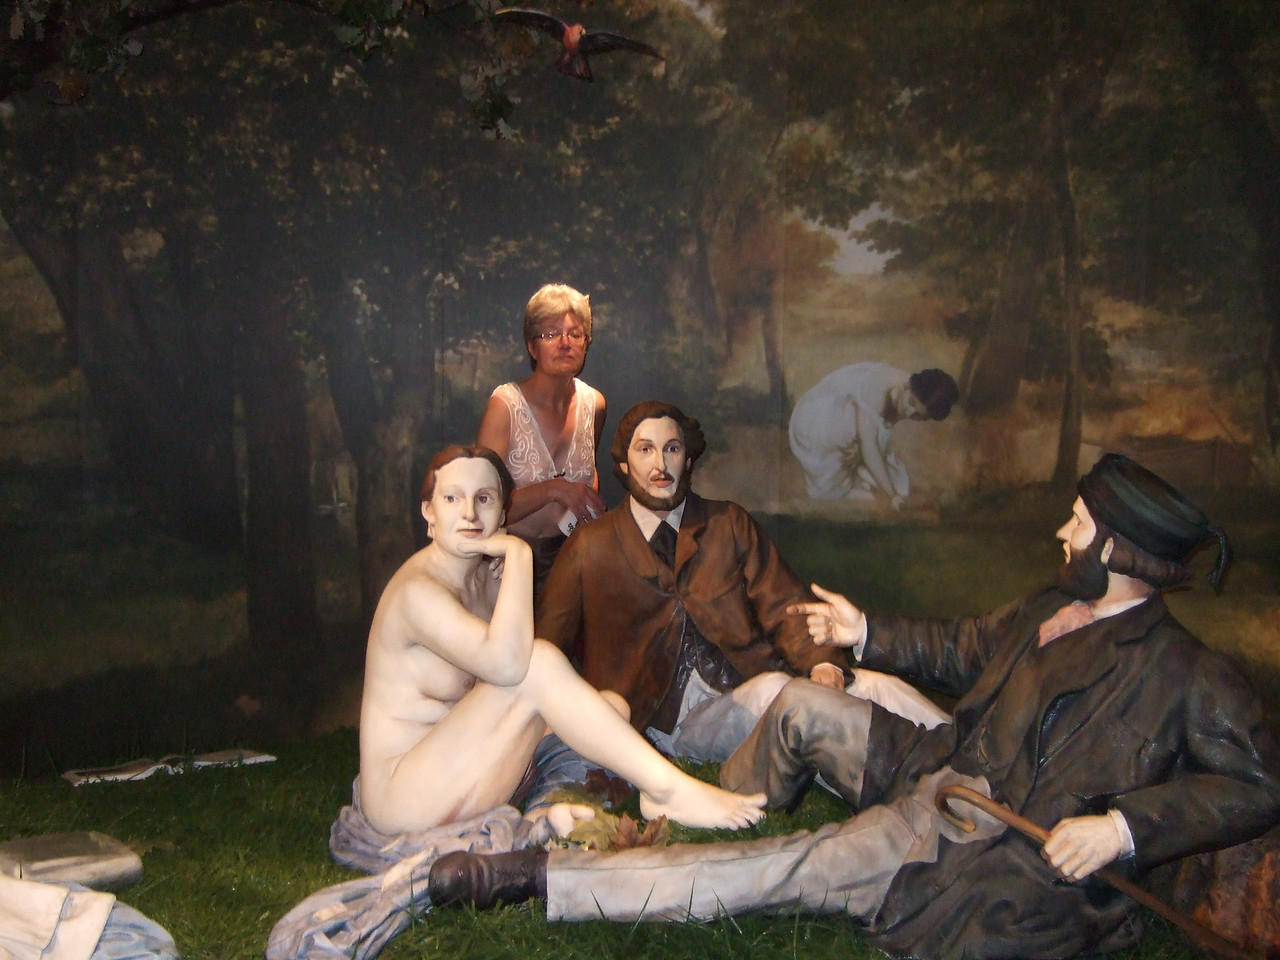 """Louise intruding in the picnic, based on the painting by Manet: <a href=""""http://www.abcgallery.com/M/manet/manet6.html"""">http://www.abcgallery.com/M/manet/manet6.html</a>"""